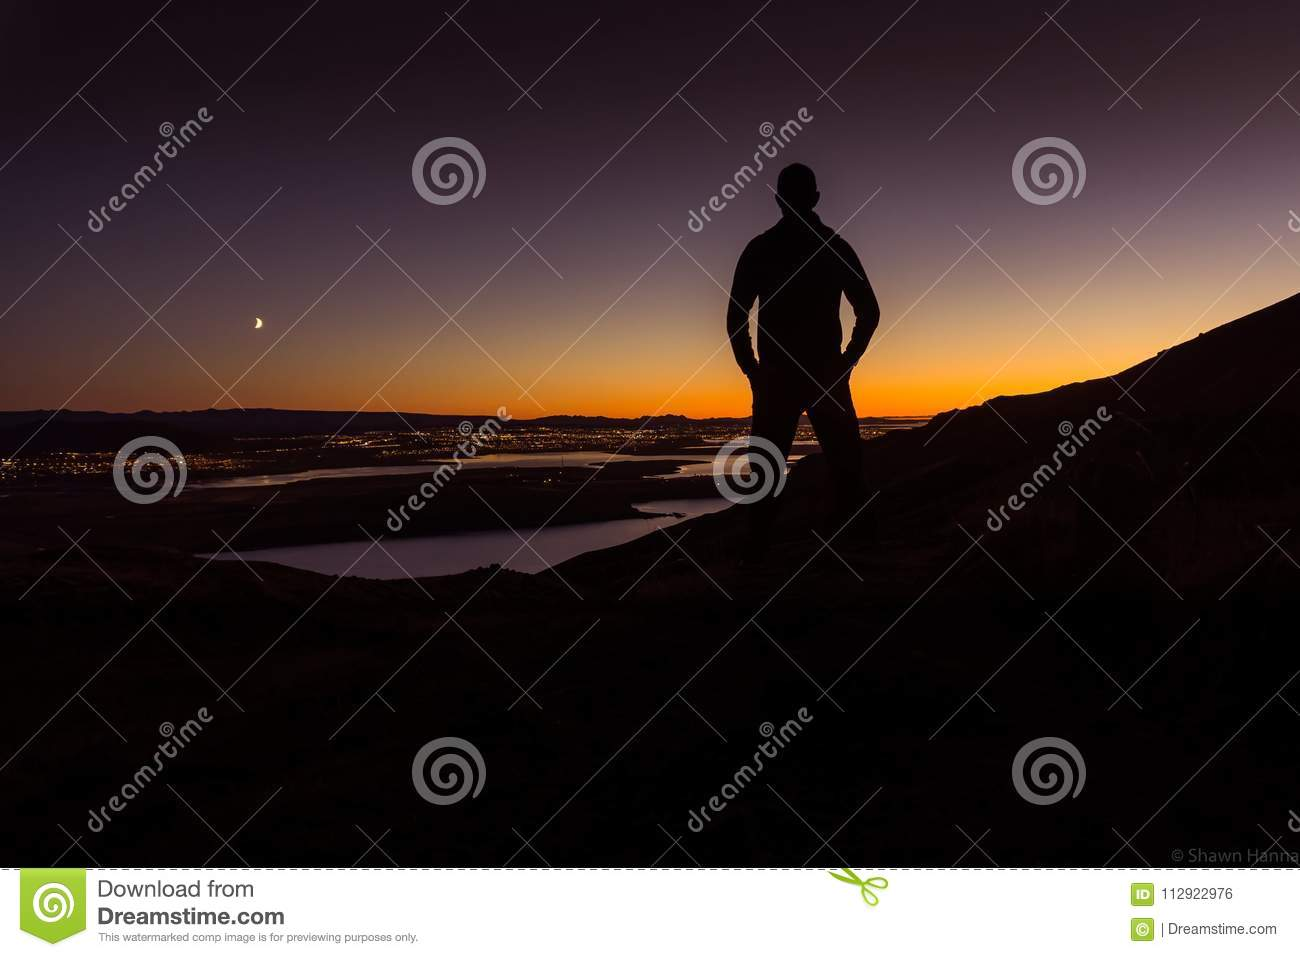 Silhouette Overlooking a city at sunset